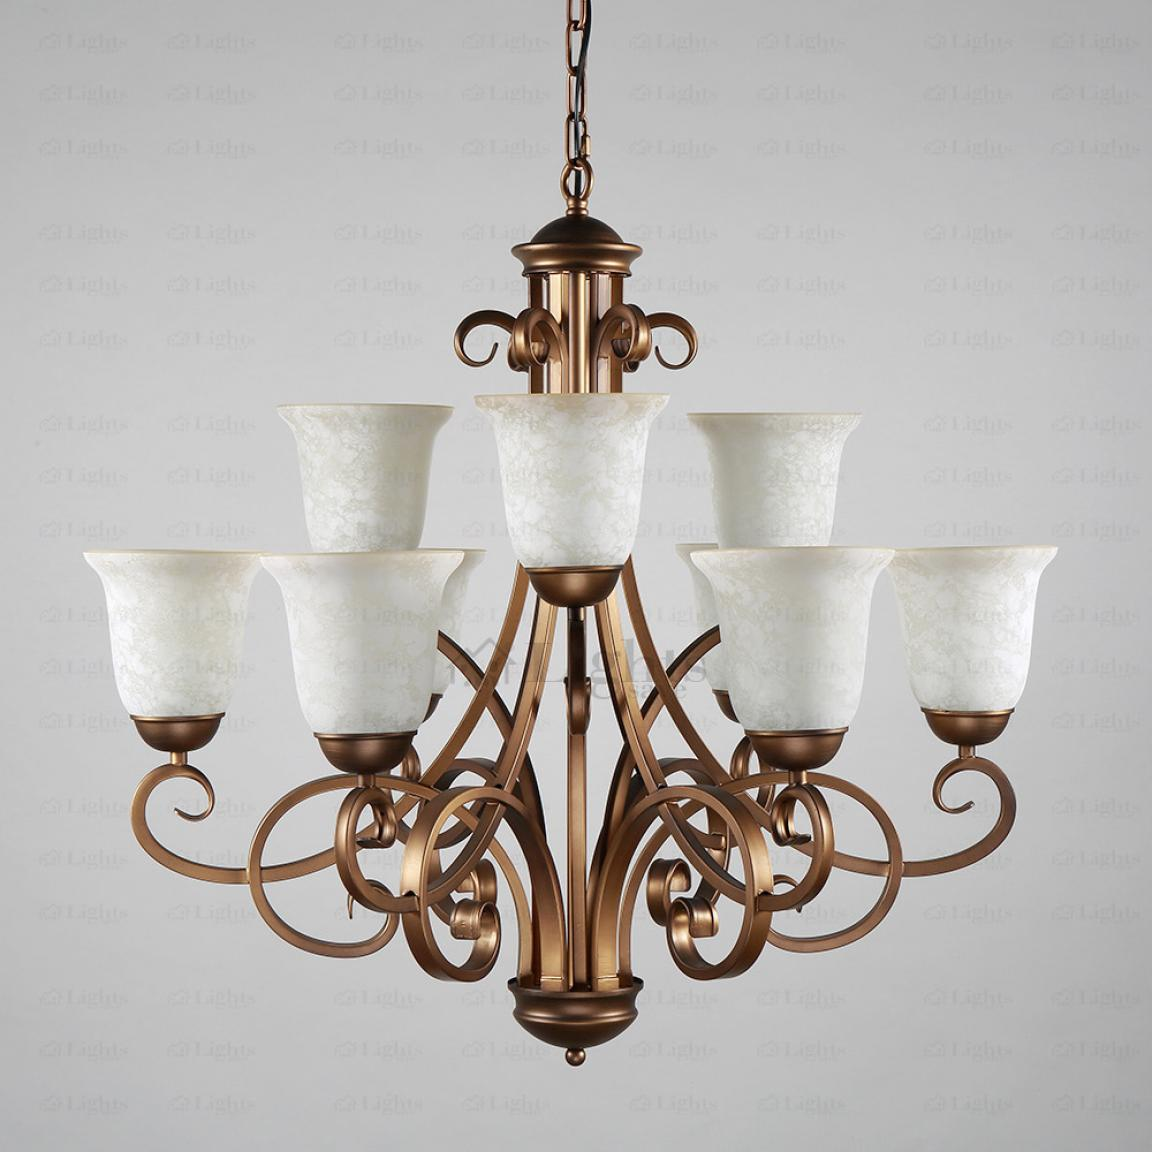 Shabby Chic Chandeliers Inspirations